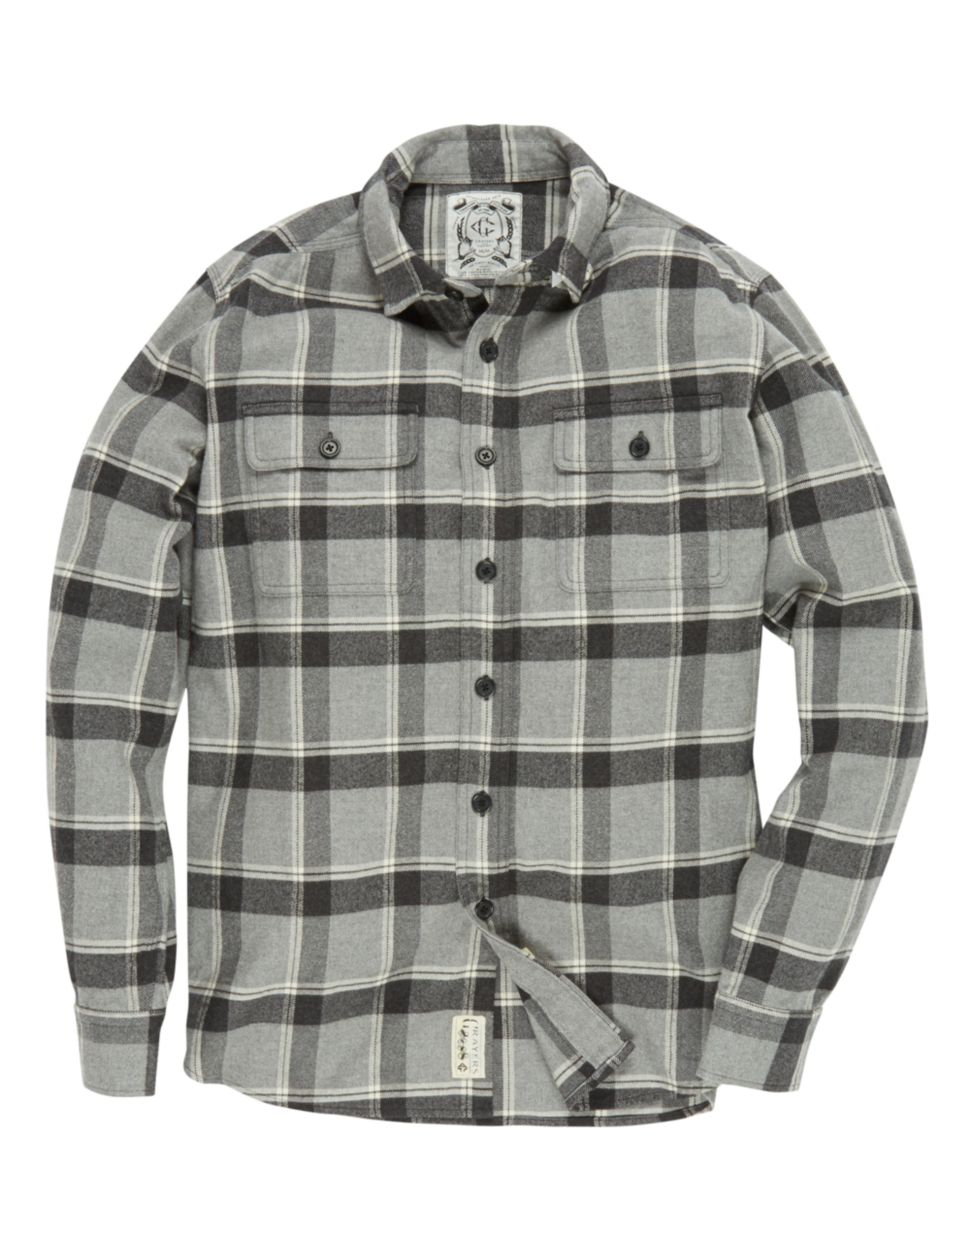 Grayers heritage plaid flannel shirt in gray for men for Grey plaid shirt womens